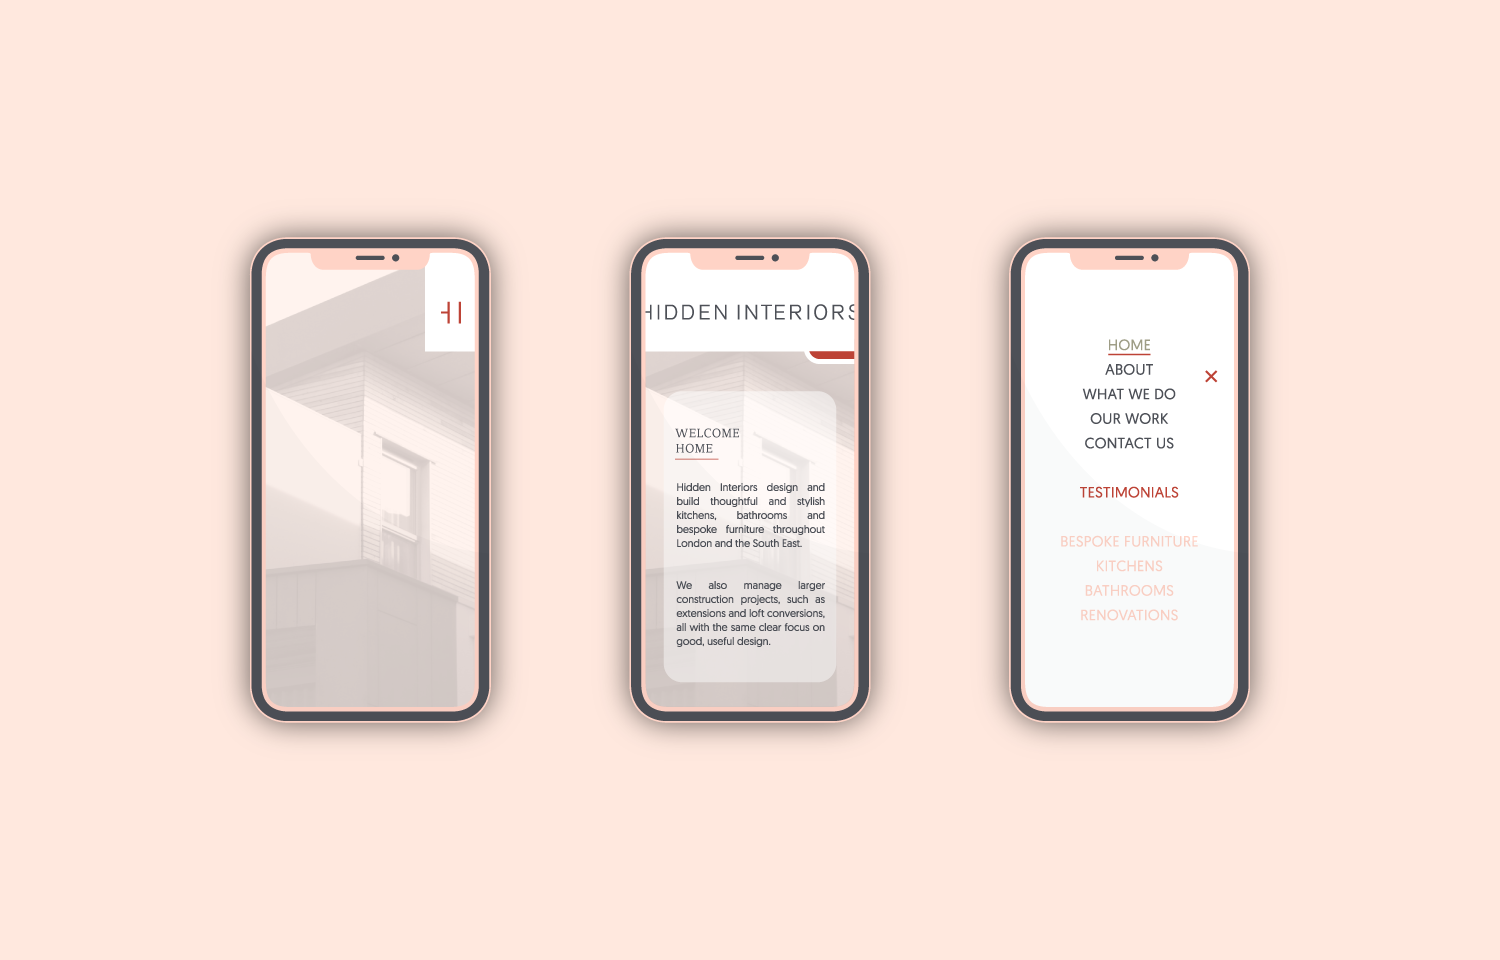 Hidden Interiors website designed for mobile.